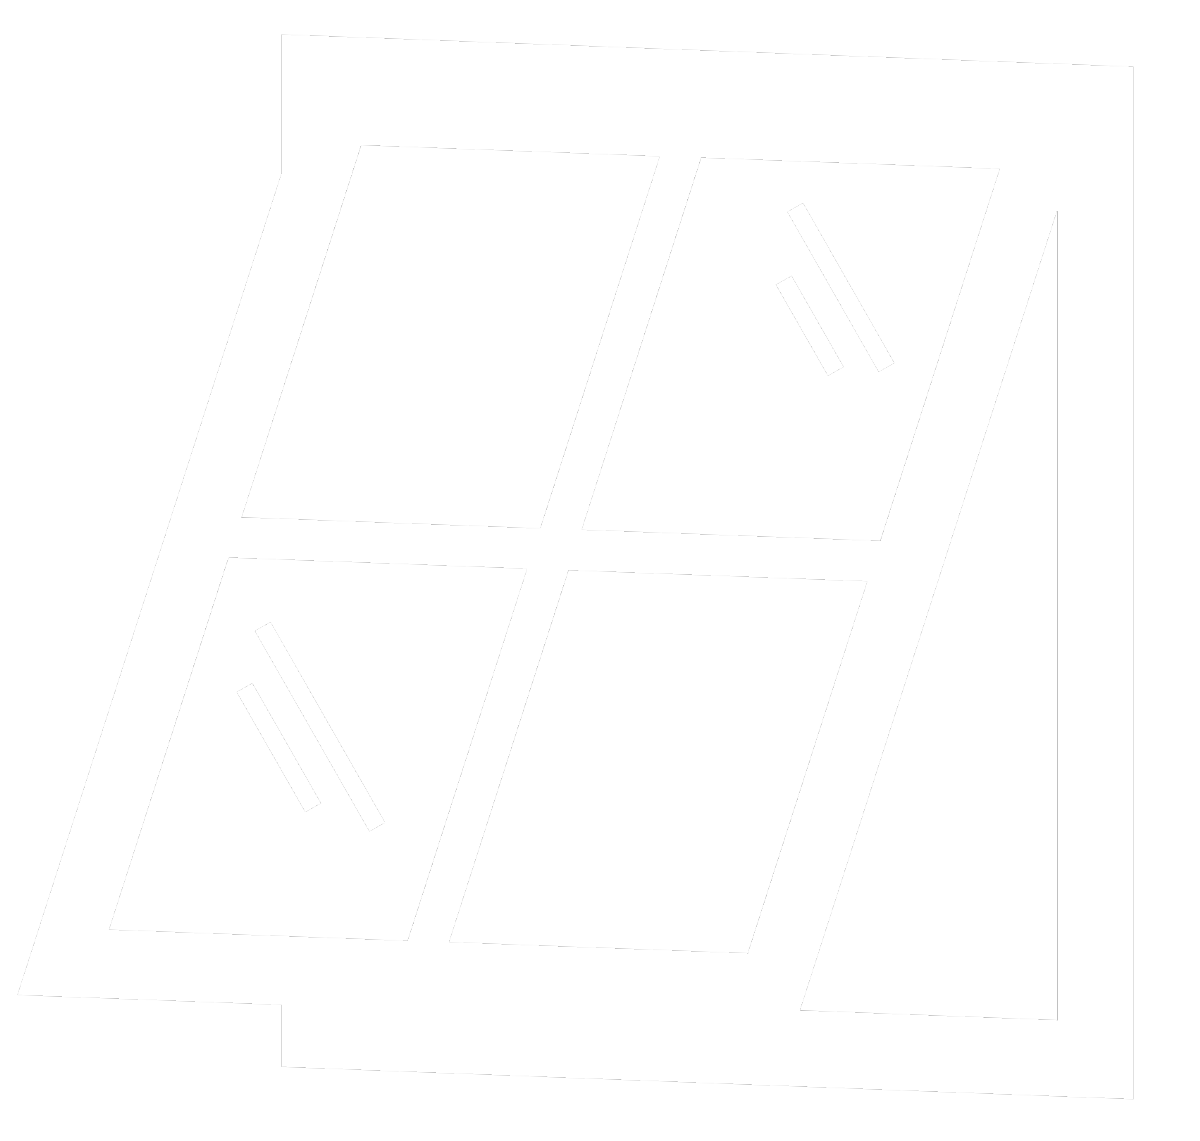 image-window.png